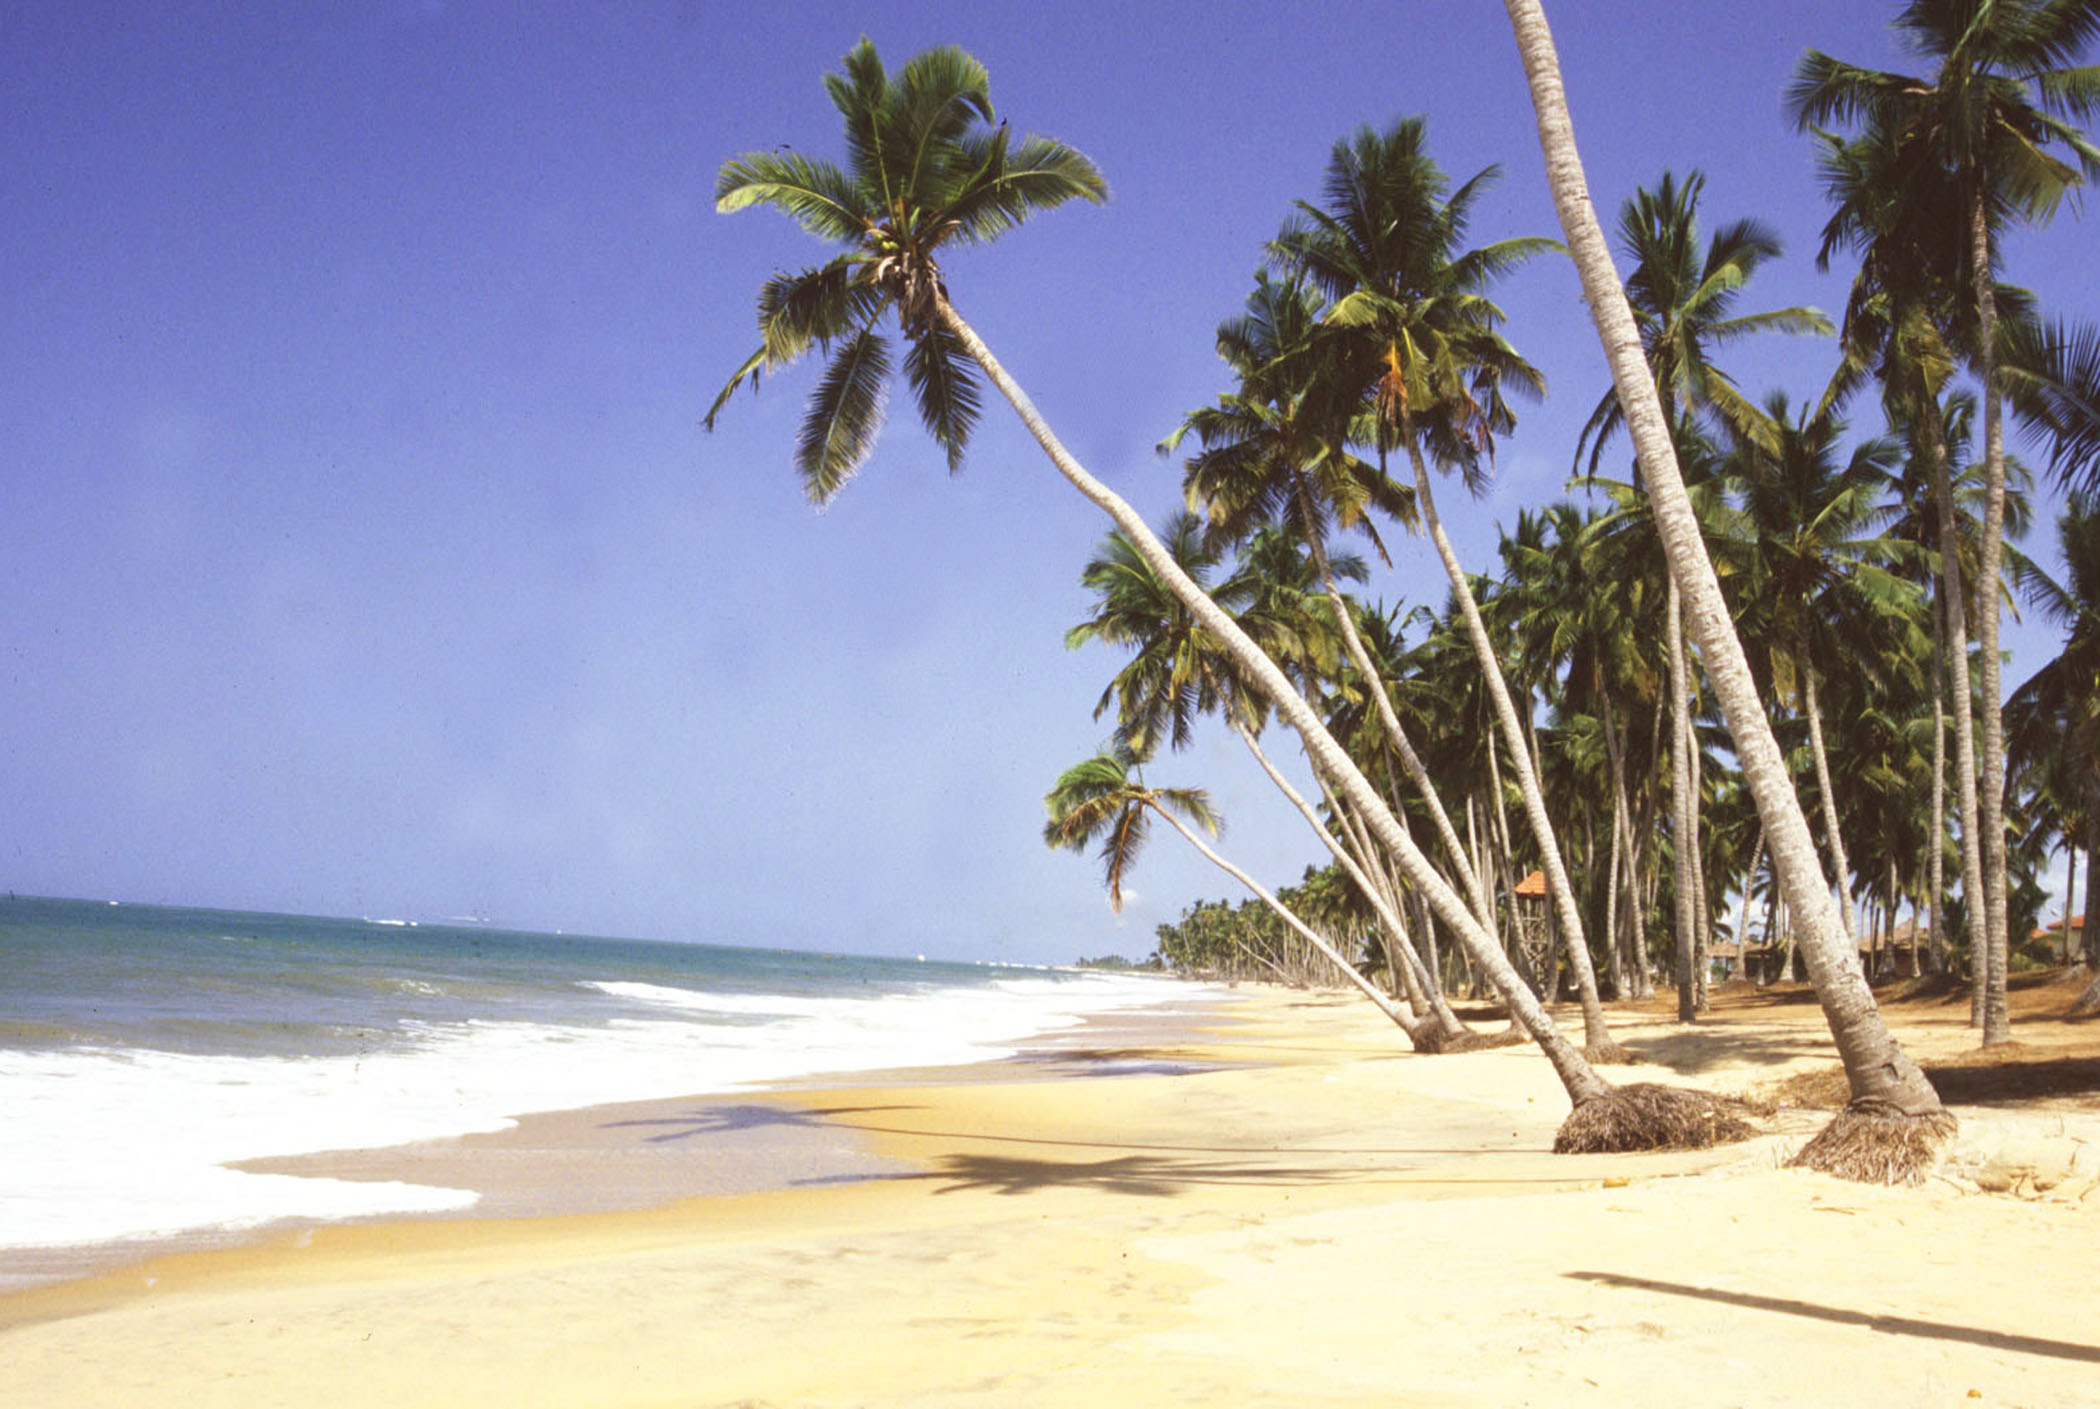 kokrobite beach places to visit in accra ghana